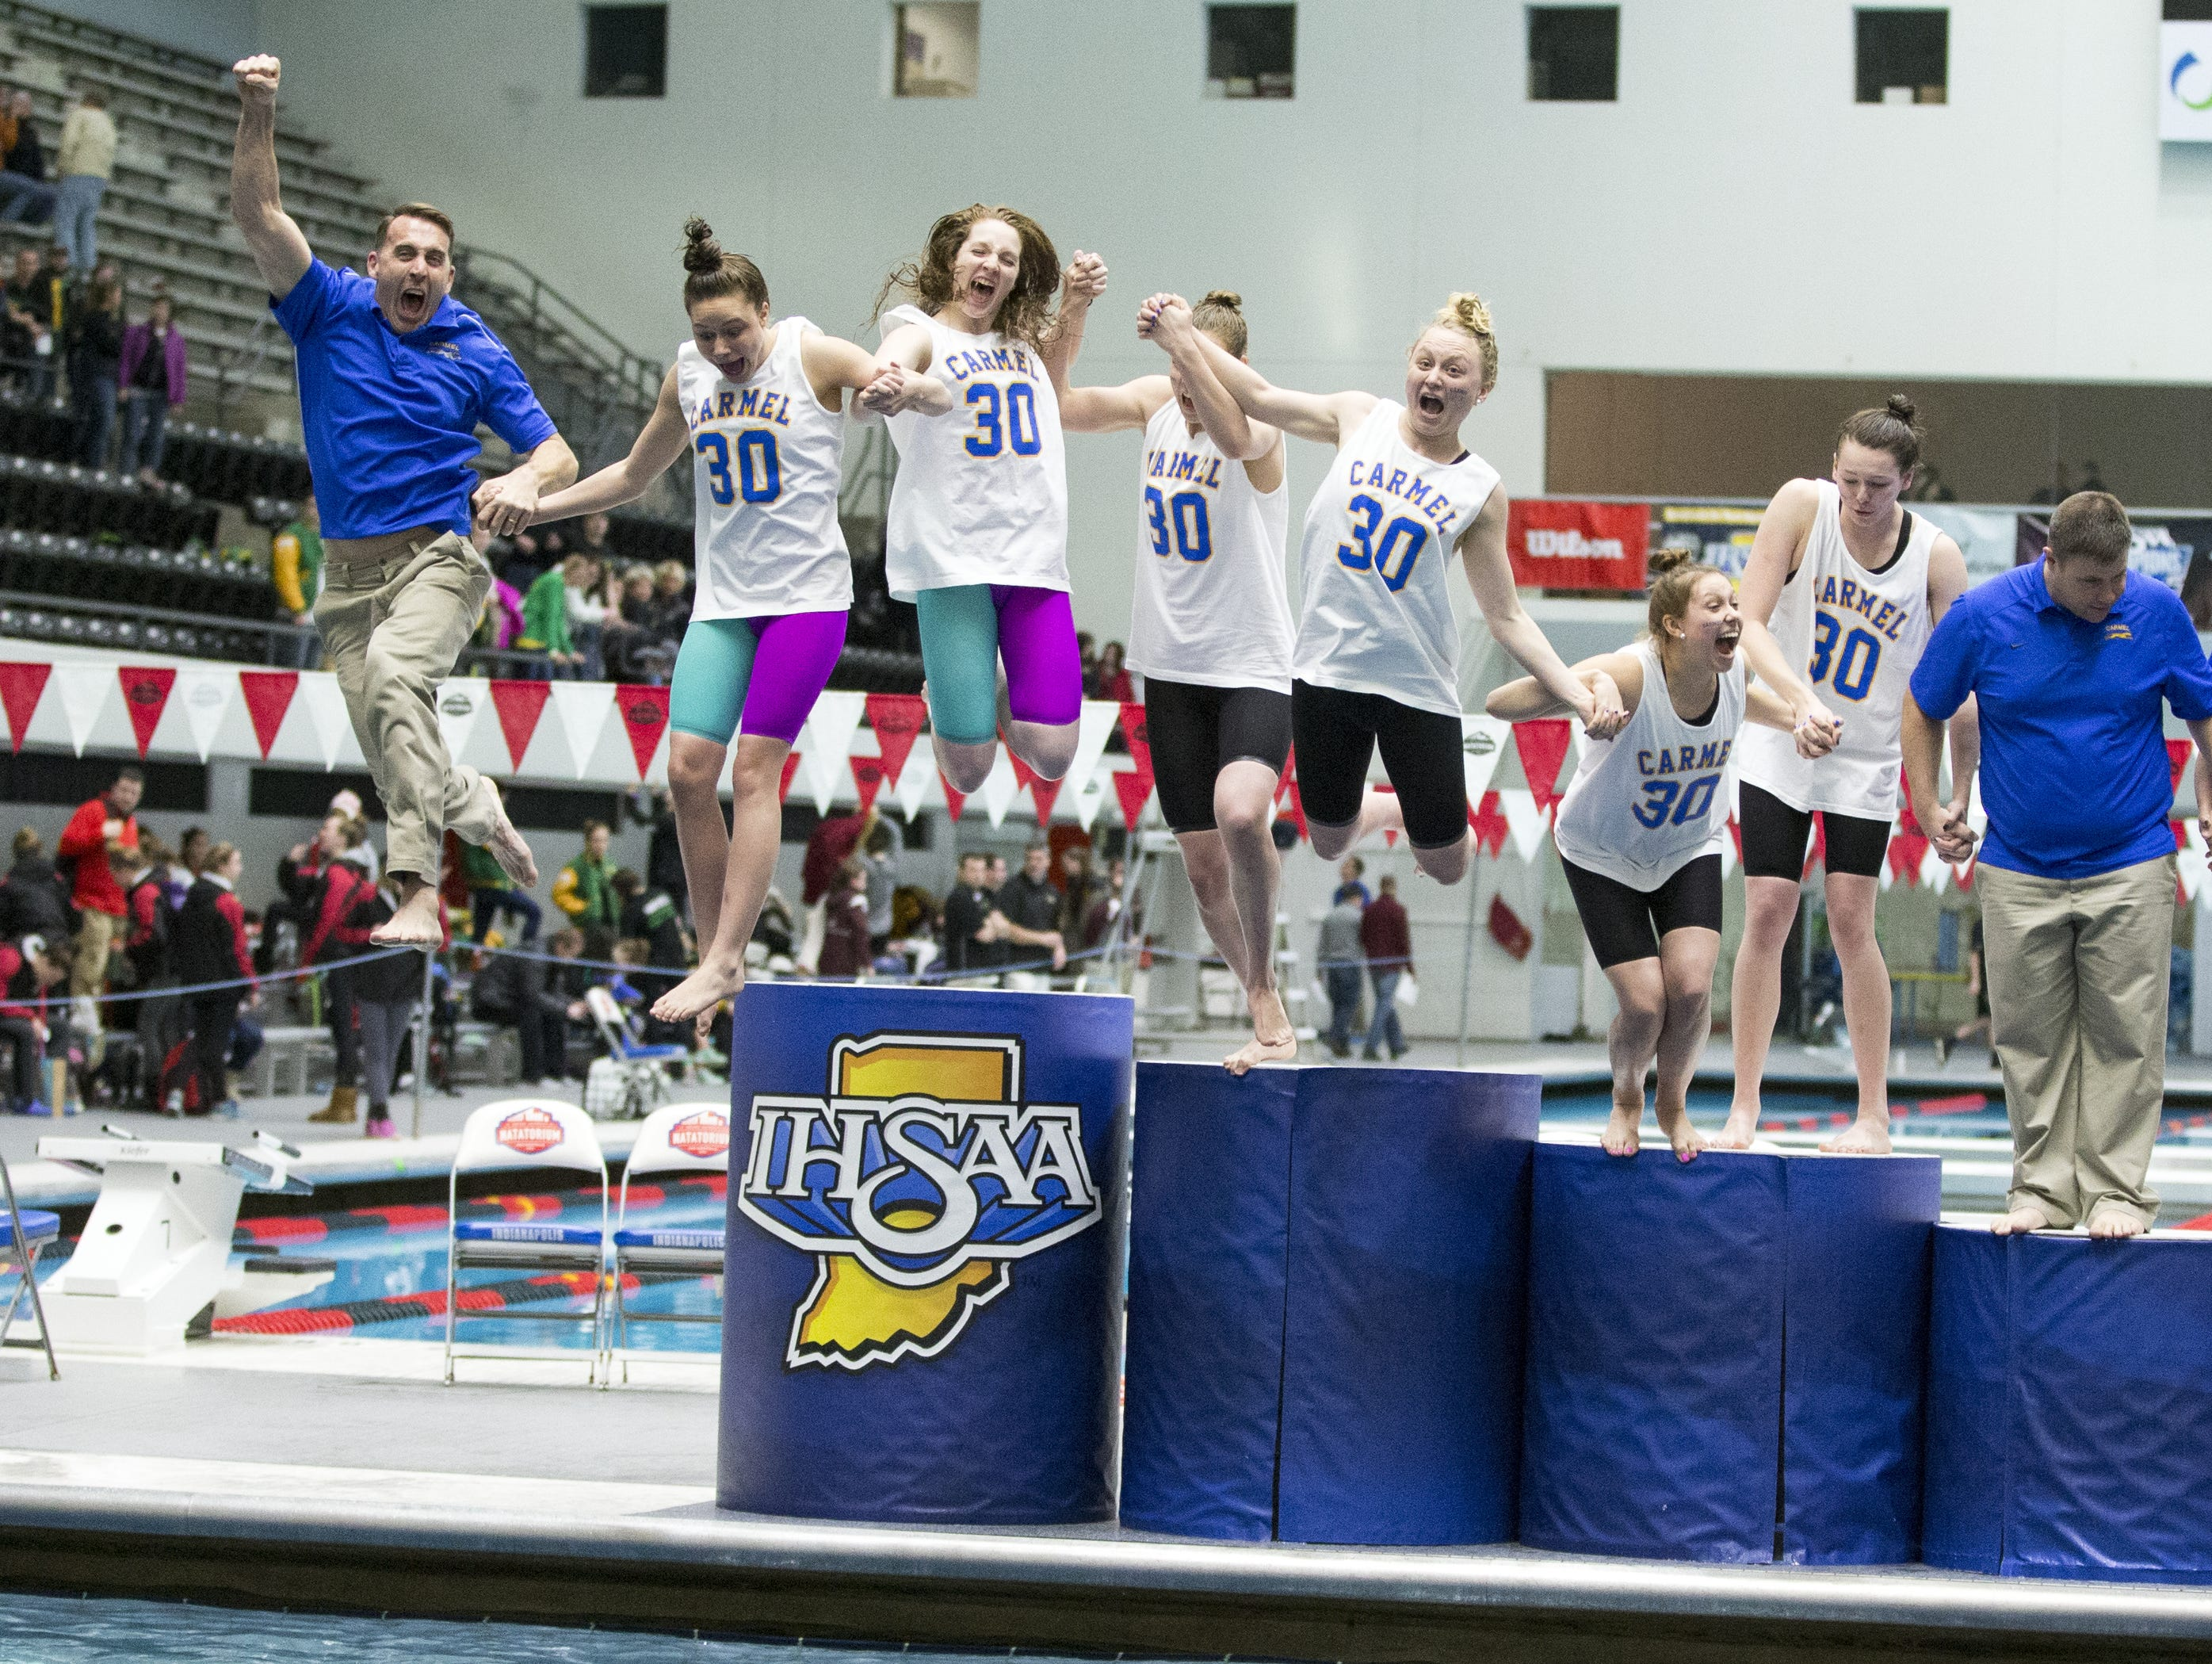 Carmel swimmers and coaches jump into the water after winning their 30th straight state title, a new national record in any sport.